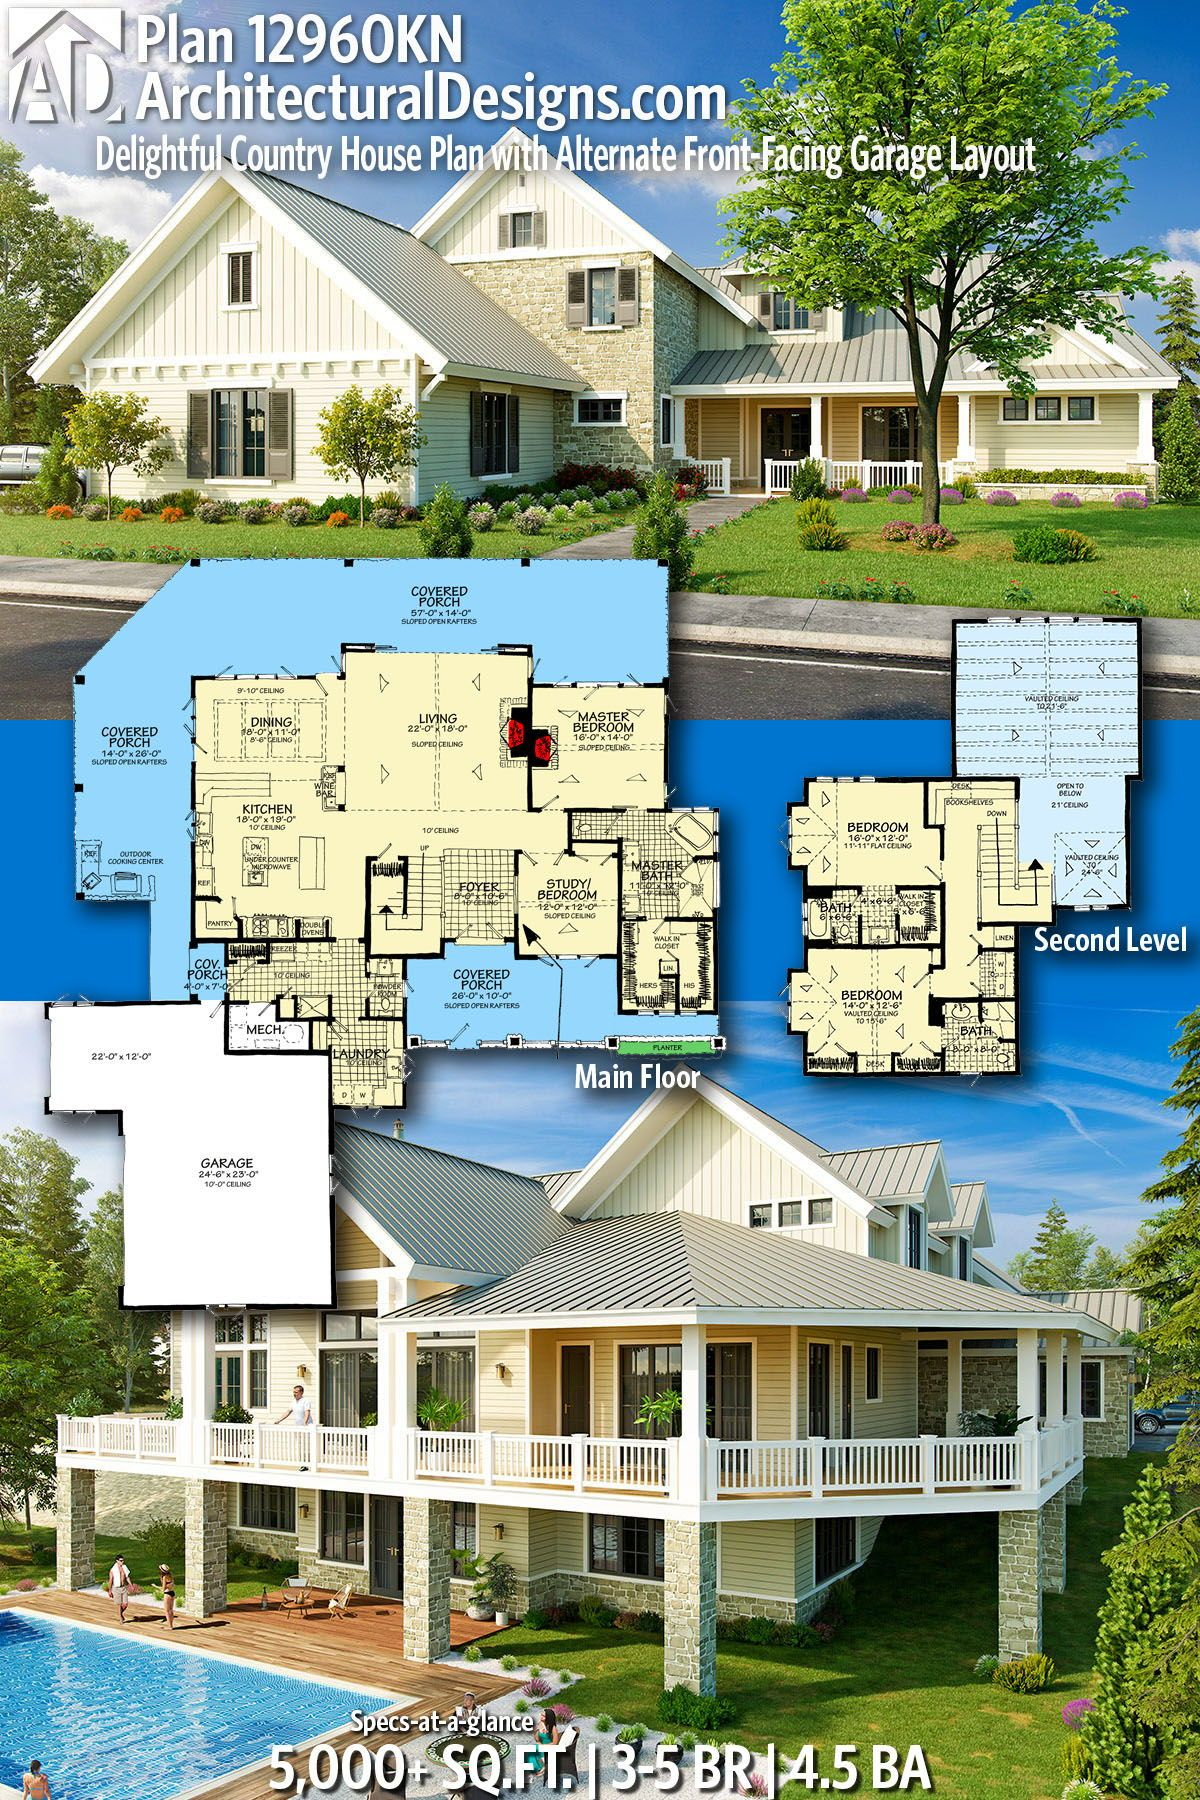 Architectural Designs Home Plan 12960KN gives you 3-5 bedrooms, 4.5 baths and 5,000+ sq. ft. Ready when you are! Where do YOU want to build? #12960KN #adhouseplans #country #newamerican #architecturaldesigns #houseplans #architecture #newhome #newconstruction #newhouse #homeplans #architecture #home #homesweethome